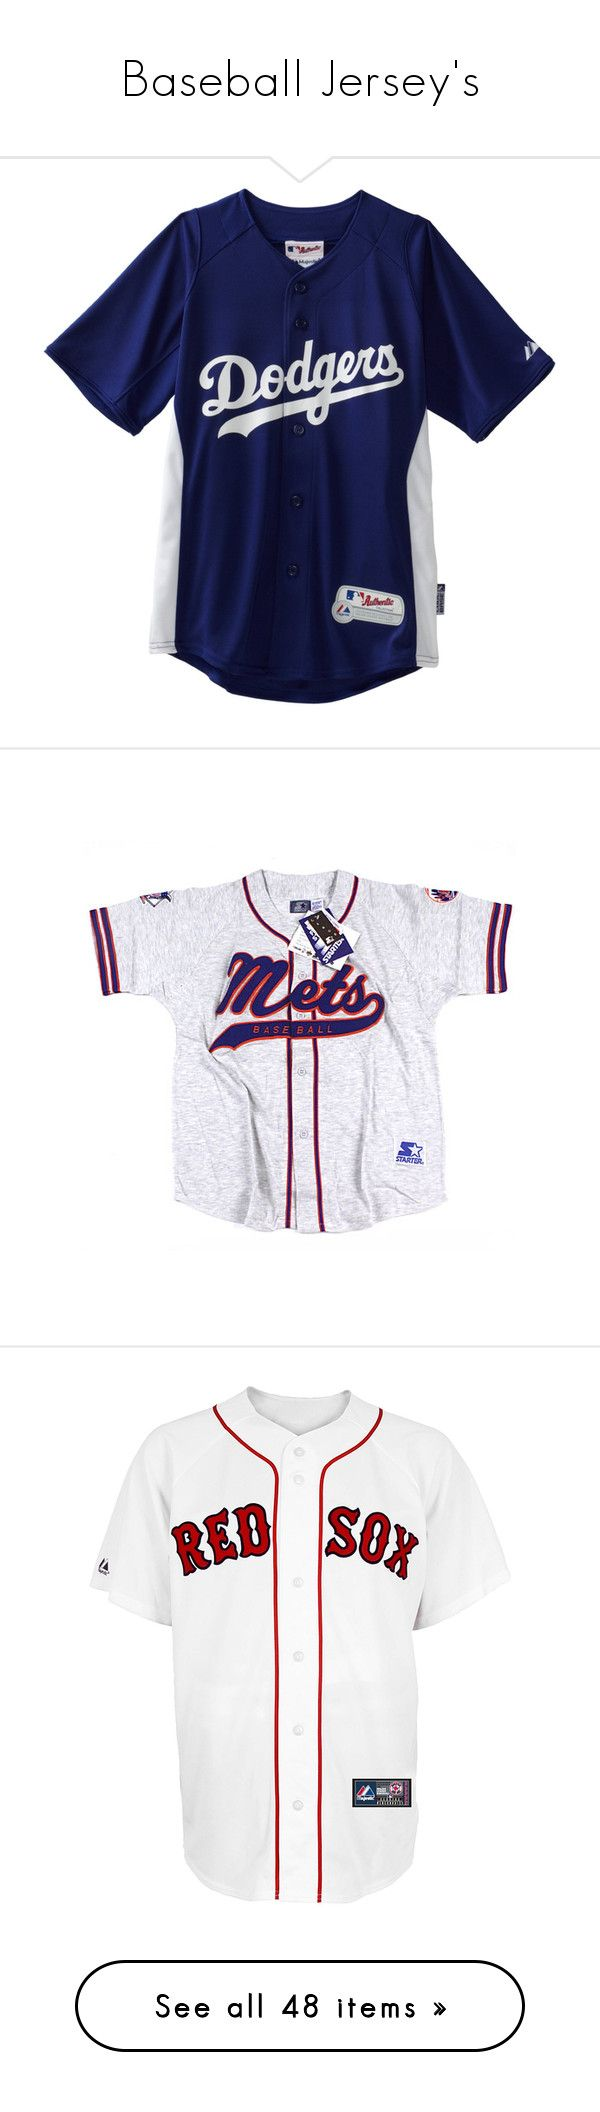 """""""Baseball Jersey's"""" by nnenna21 ❤ liked on Polyvore featuring tops, shirts, jerseys, t-shirts, shirt top, vintage shirts, shirt jersey, starter shirts, jersey shirt and jersey"""